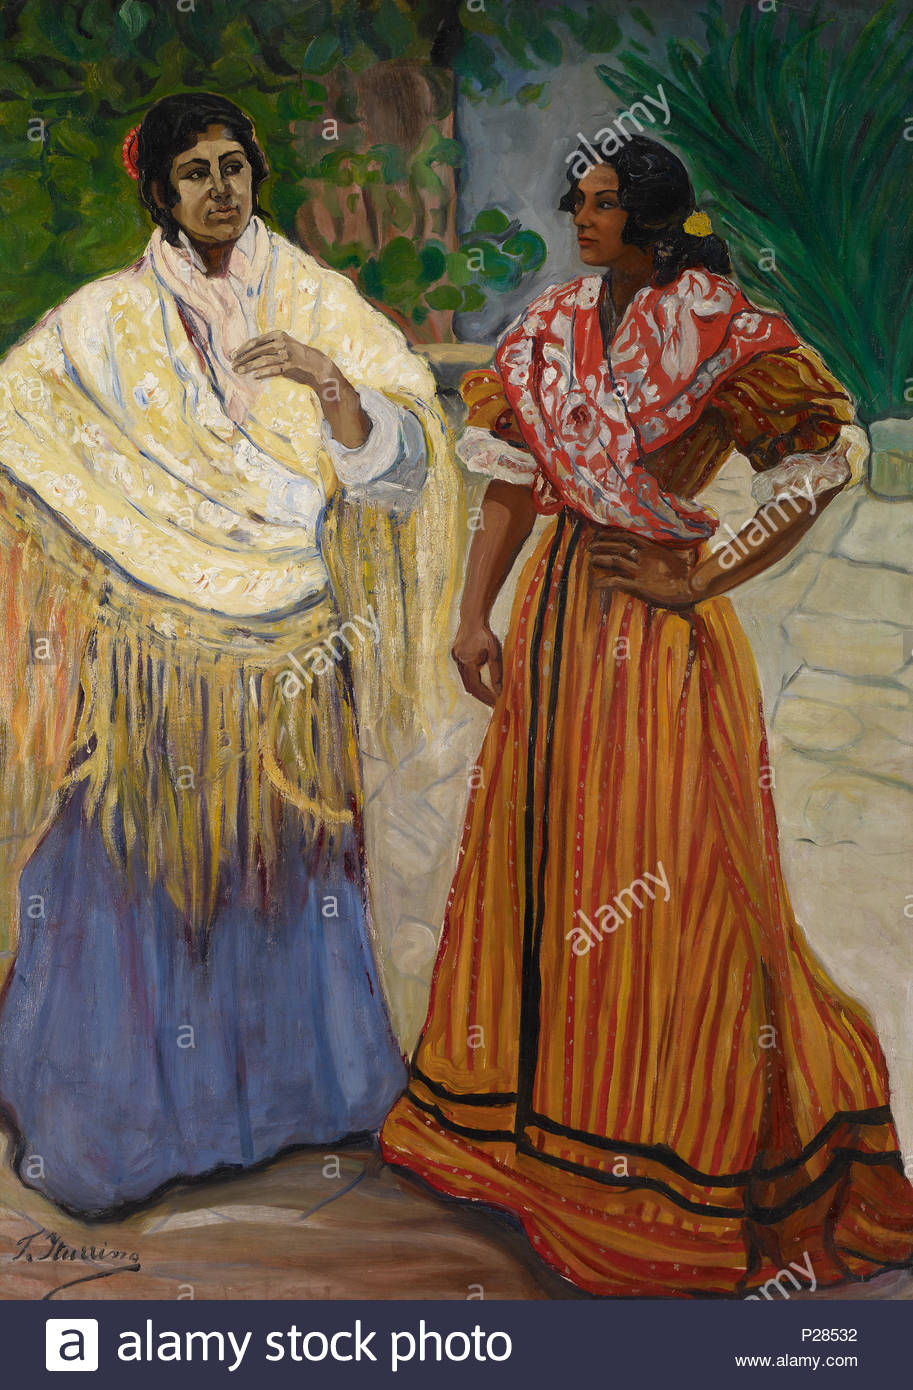 . English: Two Gypsies. Español: Dos gitanas, una con mantón de Manila amarillo oro y otra con una pañoleta (esclavina) estampada en bermellones. Oil on canvas, 180 x 129 cm, Inv. CTB.1996.51   Carmen Thyssen Museum      Native name Museo Carmen Thyssen Málaga  Location Málaga, (Spain)  Coordinates 36° 43′ 17″ N, 4° 25′ 22″ W   Established 2011  Web page www.carmenthyssenmalaga.org  Authority control  : Q5043601 VIAF: 230371067 LCCN: no2012034269 GND: 16335044-9 SUDOC: 163469776 BNF: 16968889h WorldCat    . between 1901 and 1903. Francisco Iturrino (1864–1928) 125 Francisco Iturrino Two Gypsie Stock Photo